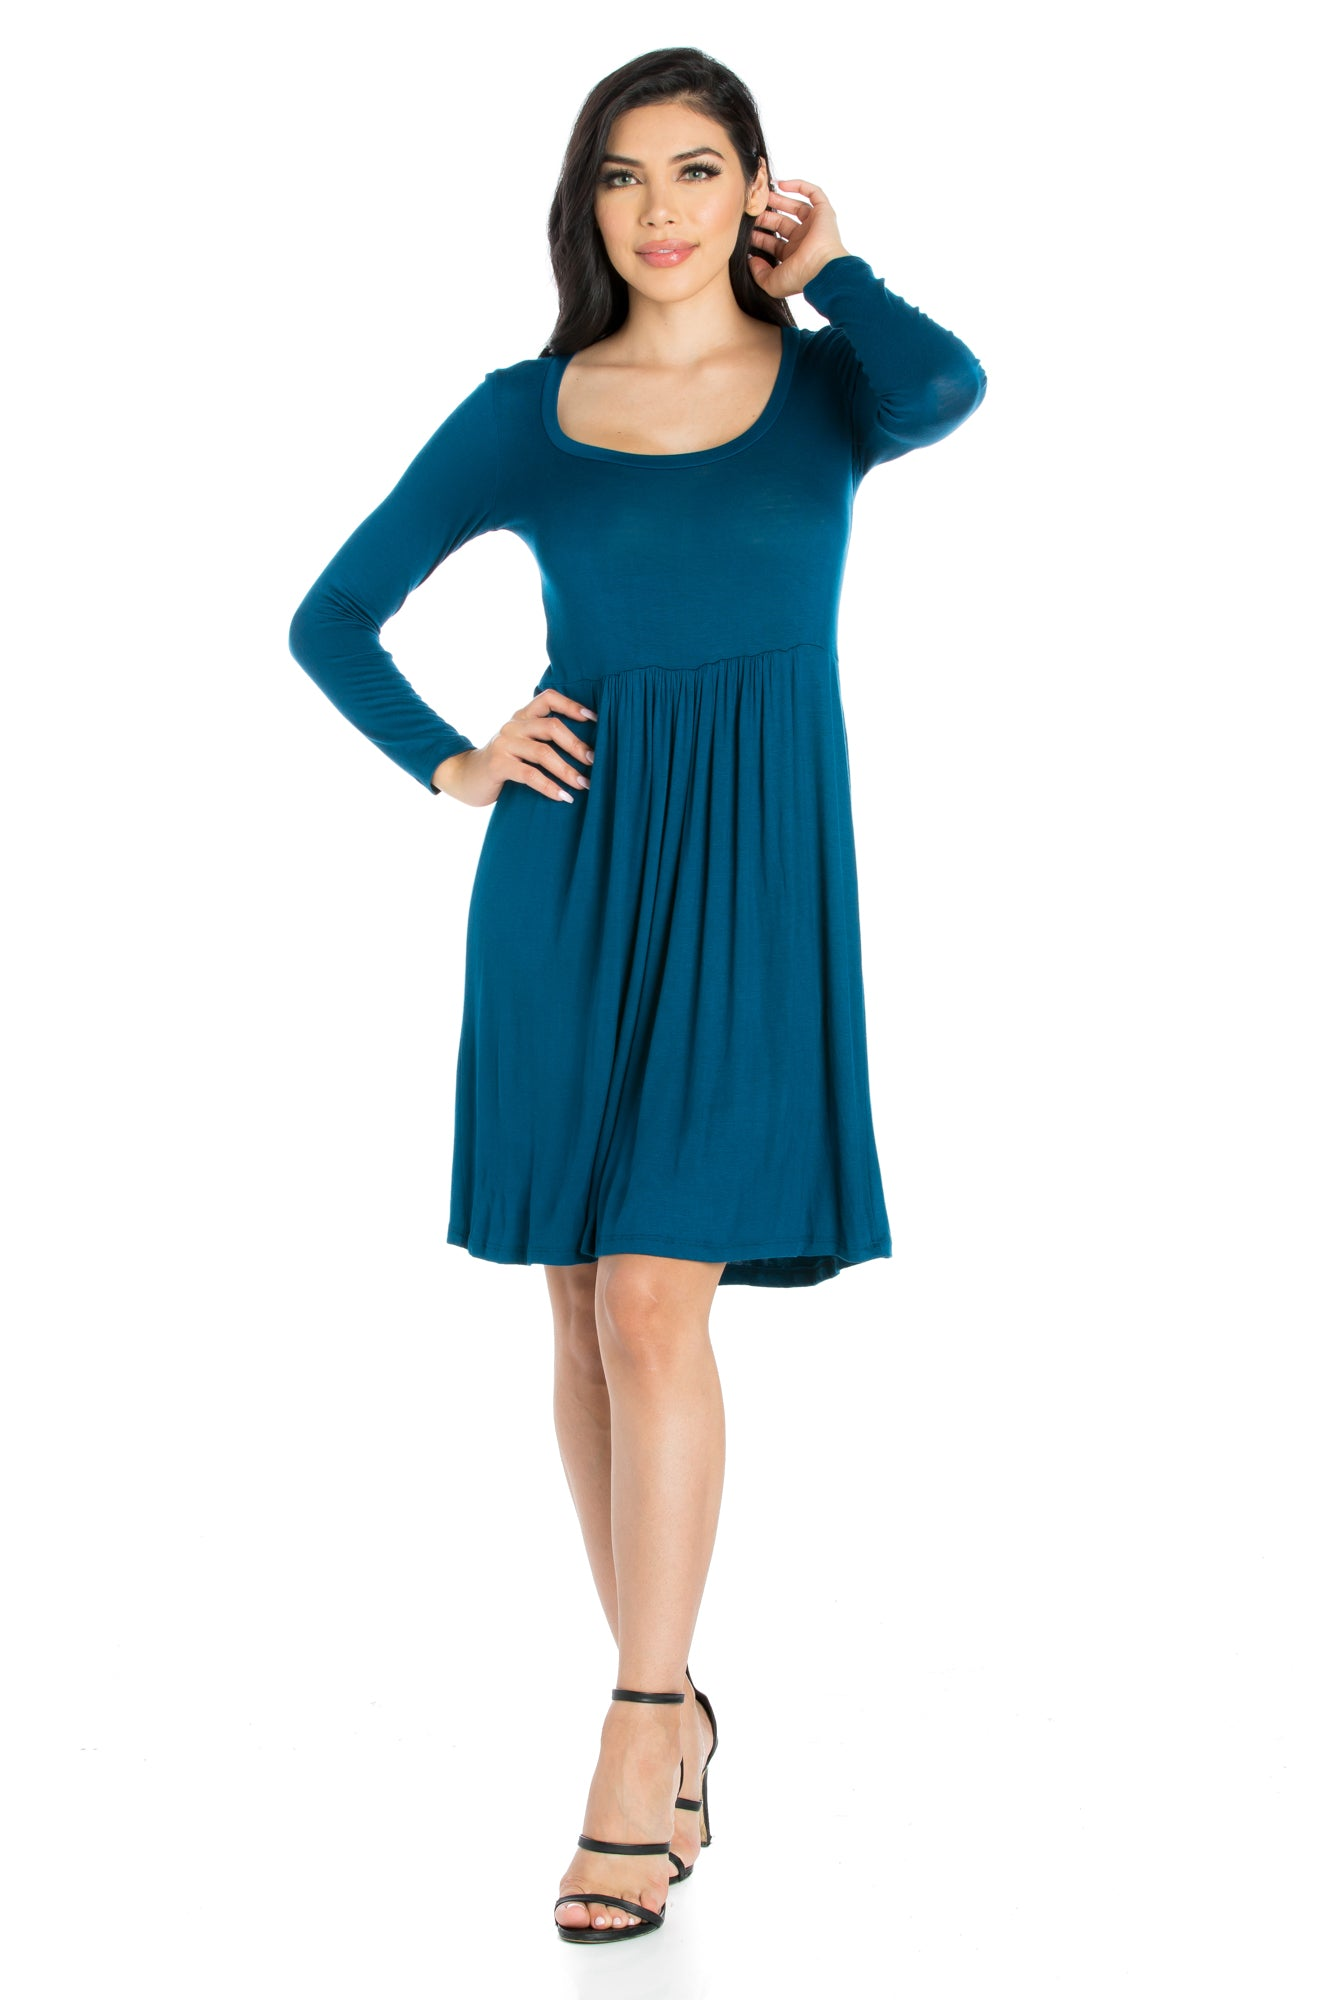 24seven Comfort Apparel Casual Long Sleeve Pleated Dress-Dresses-24Seven Comfort Apparel-TEAL-S-24/7 Comfort Apparel